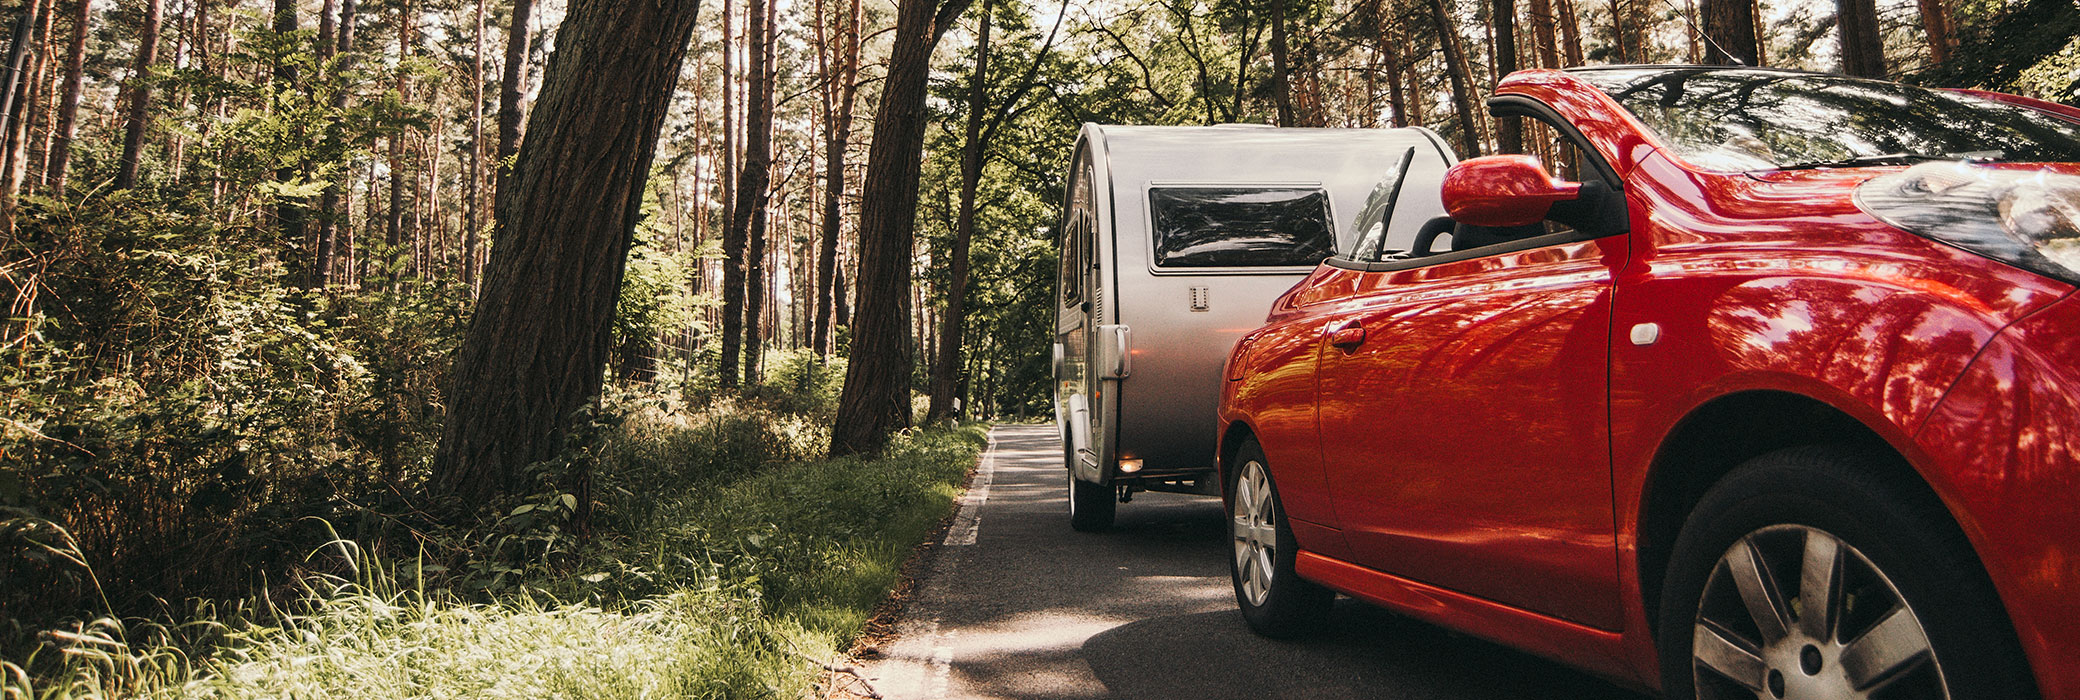 Red cabriolet with a white caravan driving down a country road